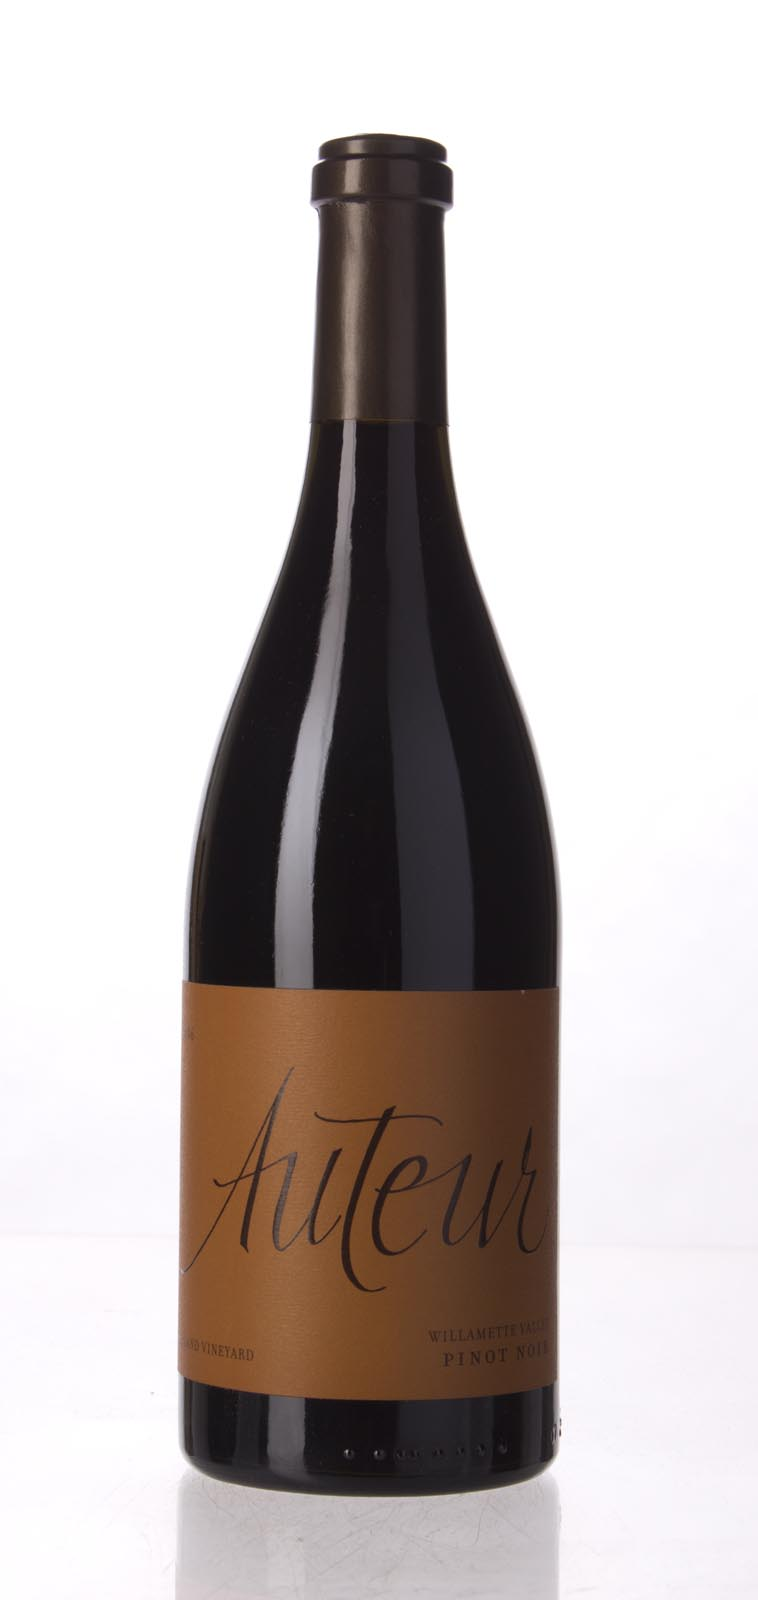 Auteur Pinot Noir Hyland Vineyard 2006, 750mL () from The BPW - Merchants of rare and fine wines.